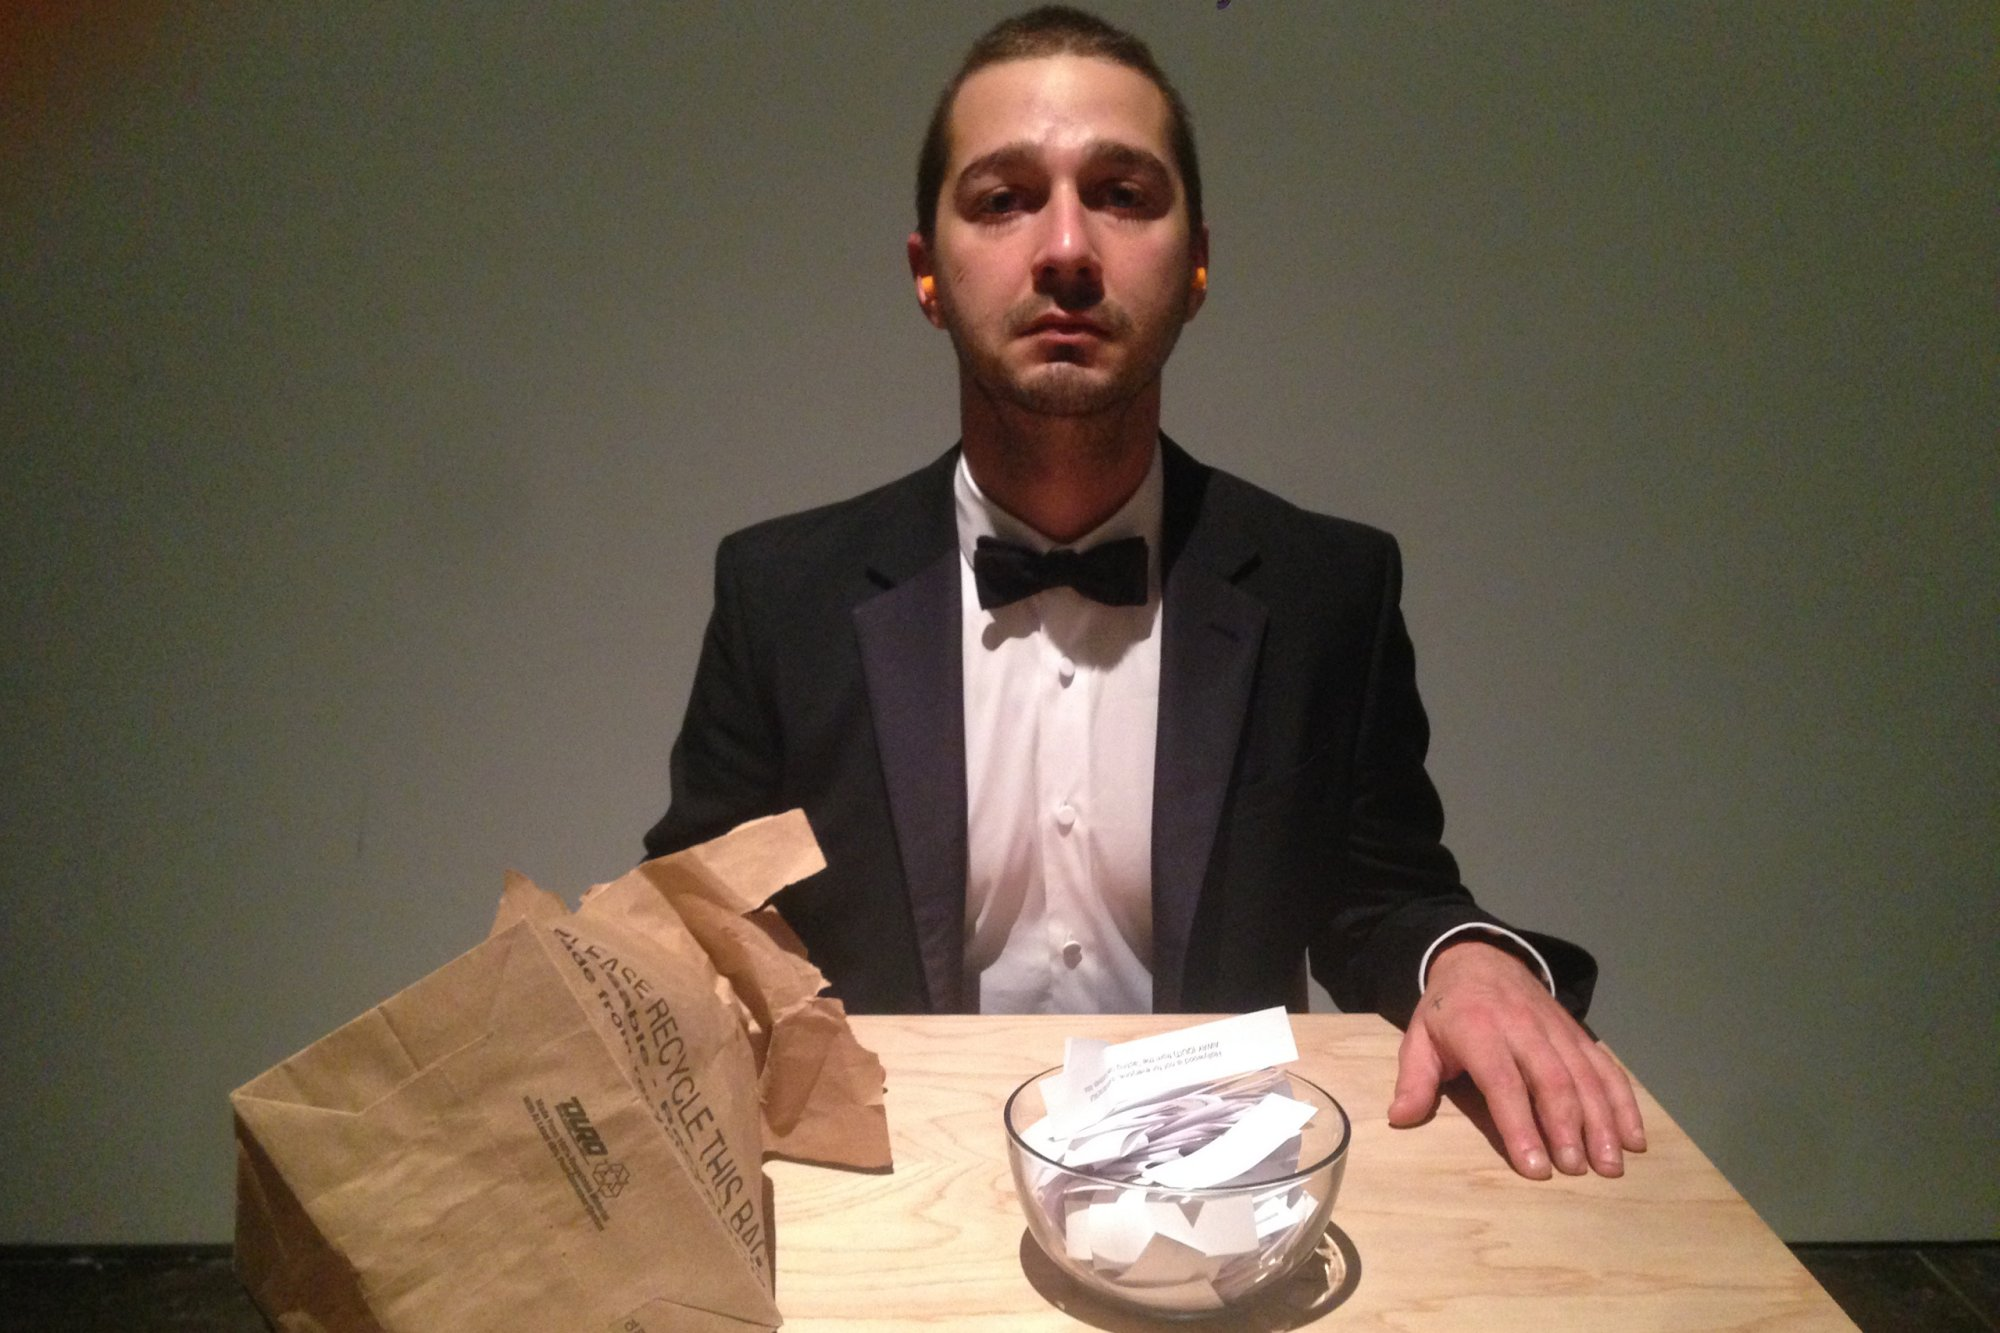 I Watched Shia LaBeouf Cry at His Weird LA Art Project #IAMSORRY - The Daily Beast